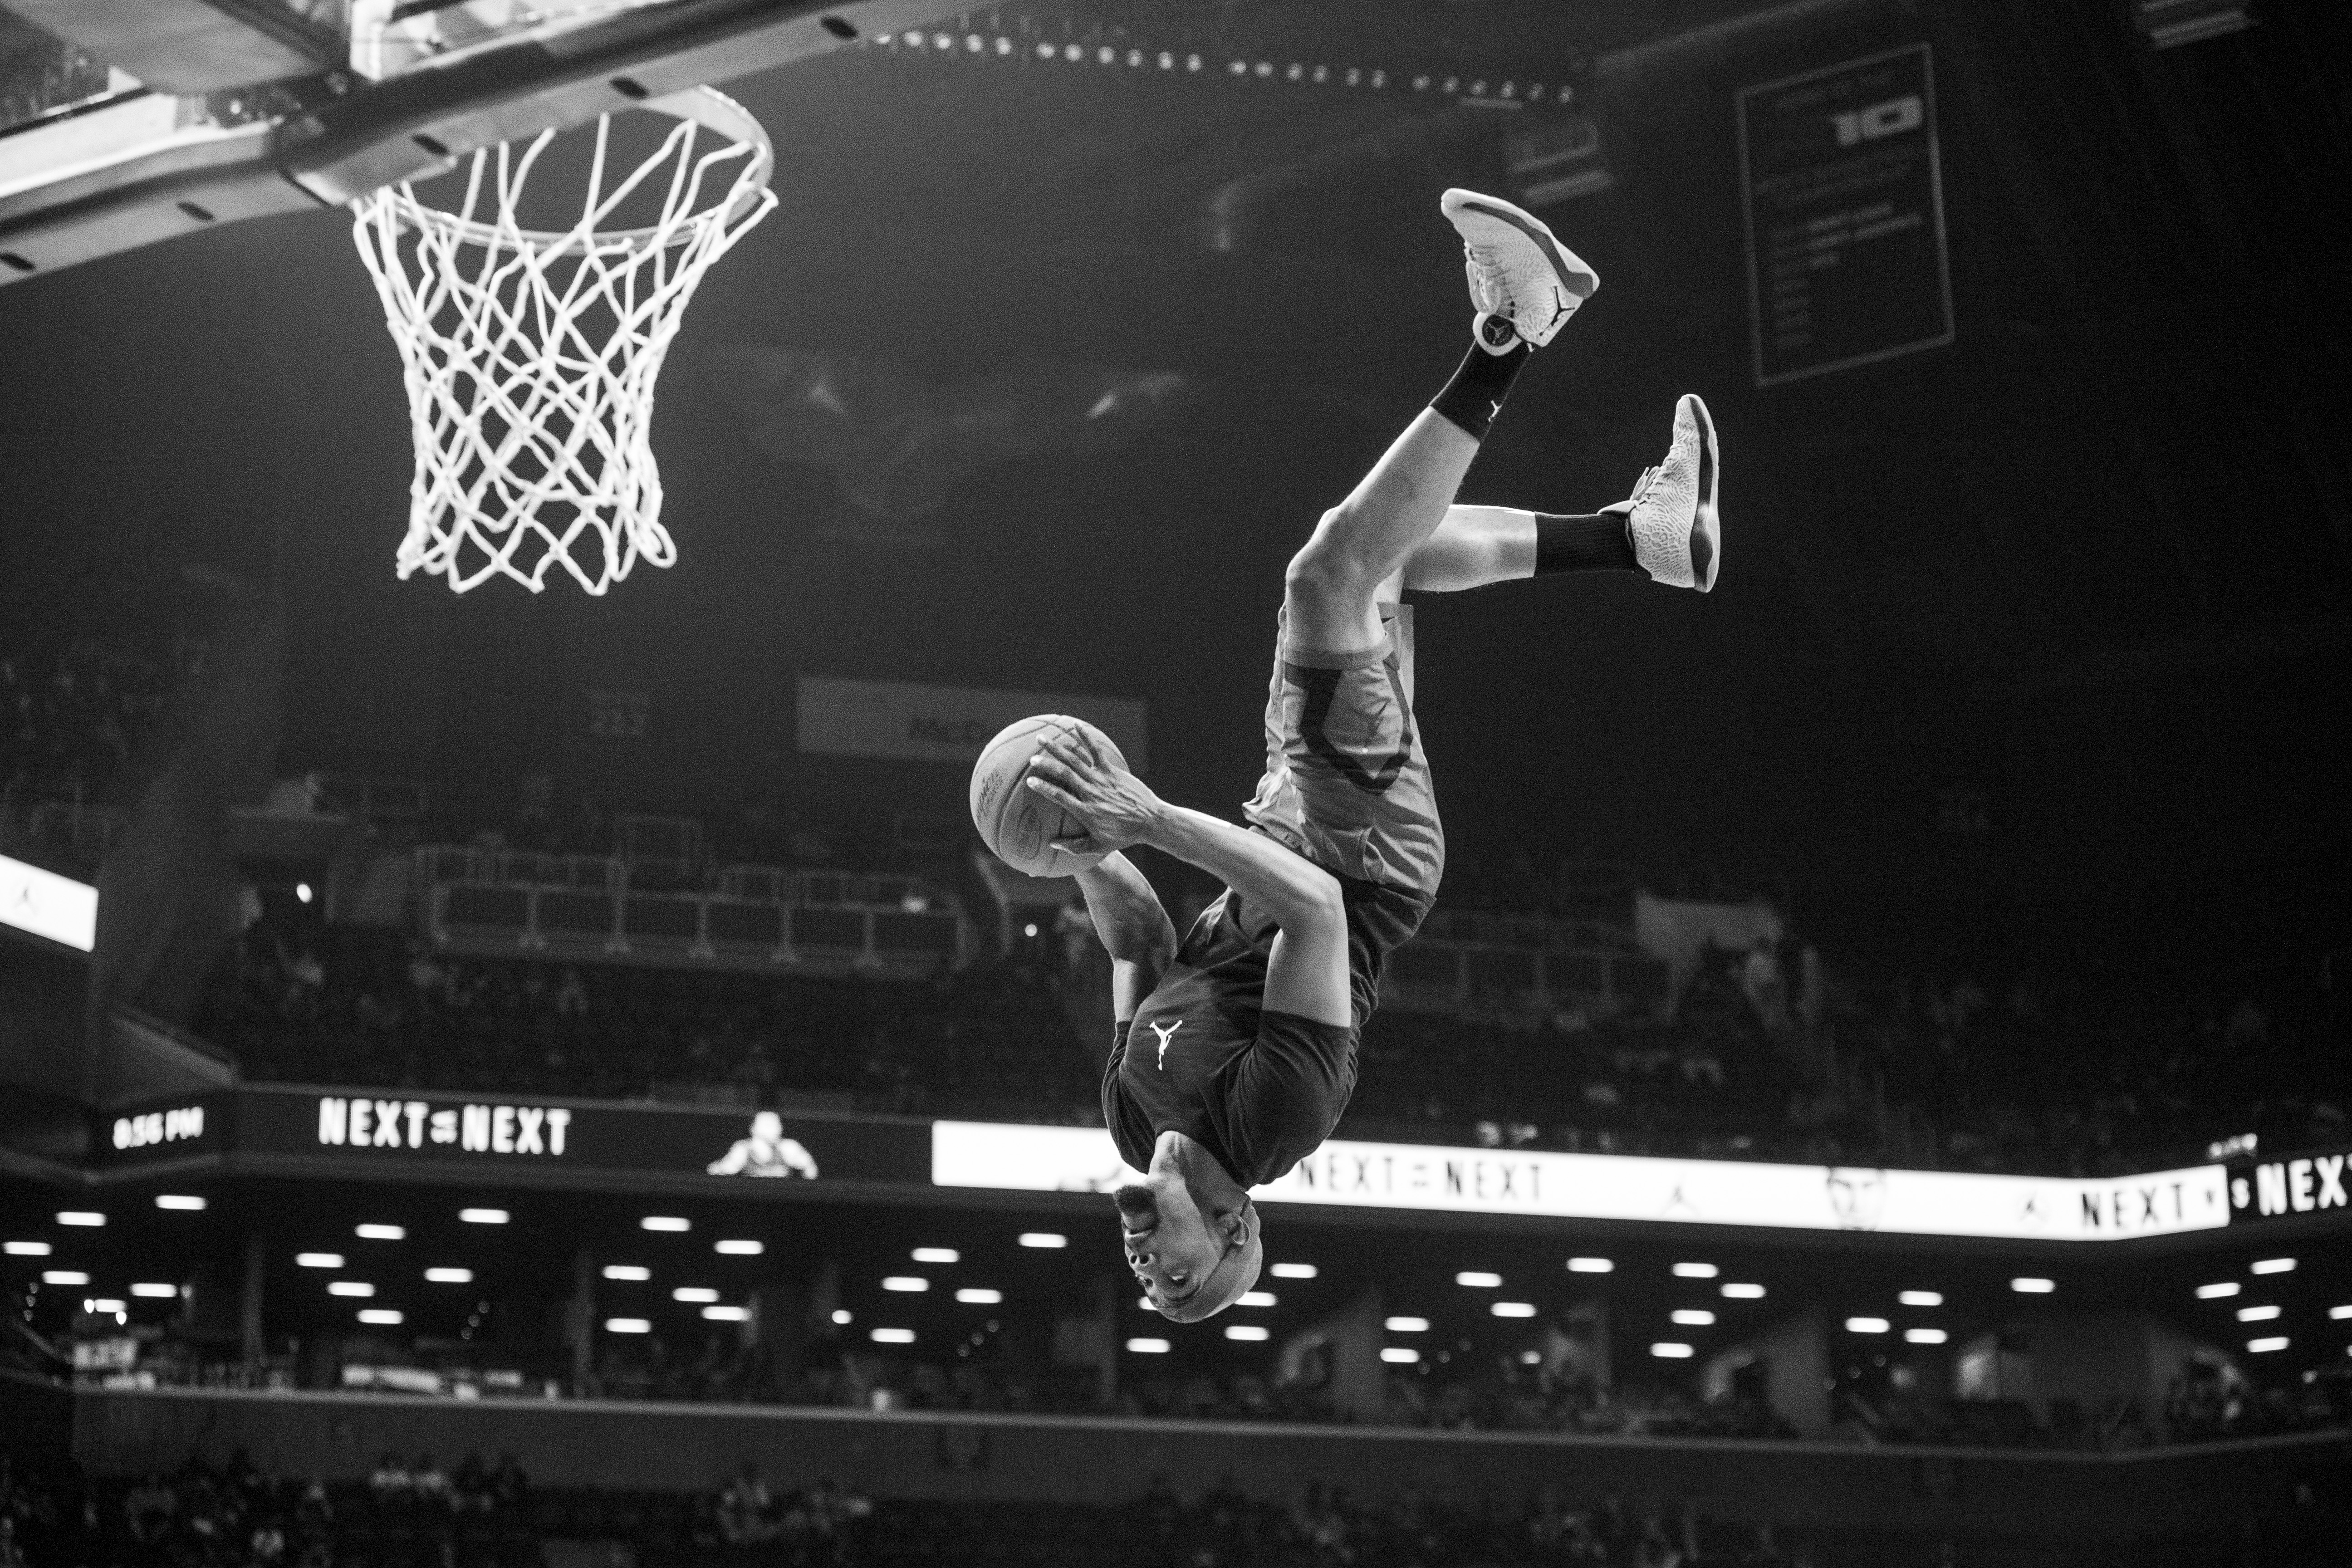 The Jordan Brand Classic men's game at the Barclays Center in Brooklyn, New York on Friday, April 15, 2016. (Photo by Taylor Baucom/The Players' Tribune)